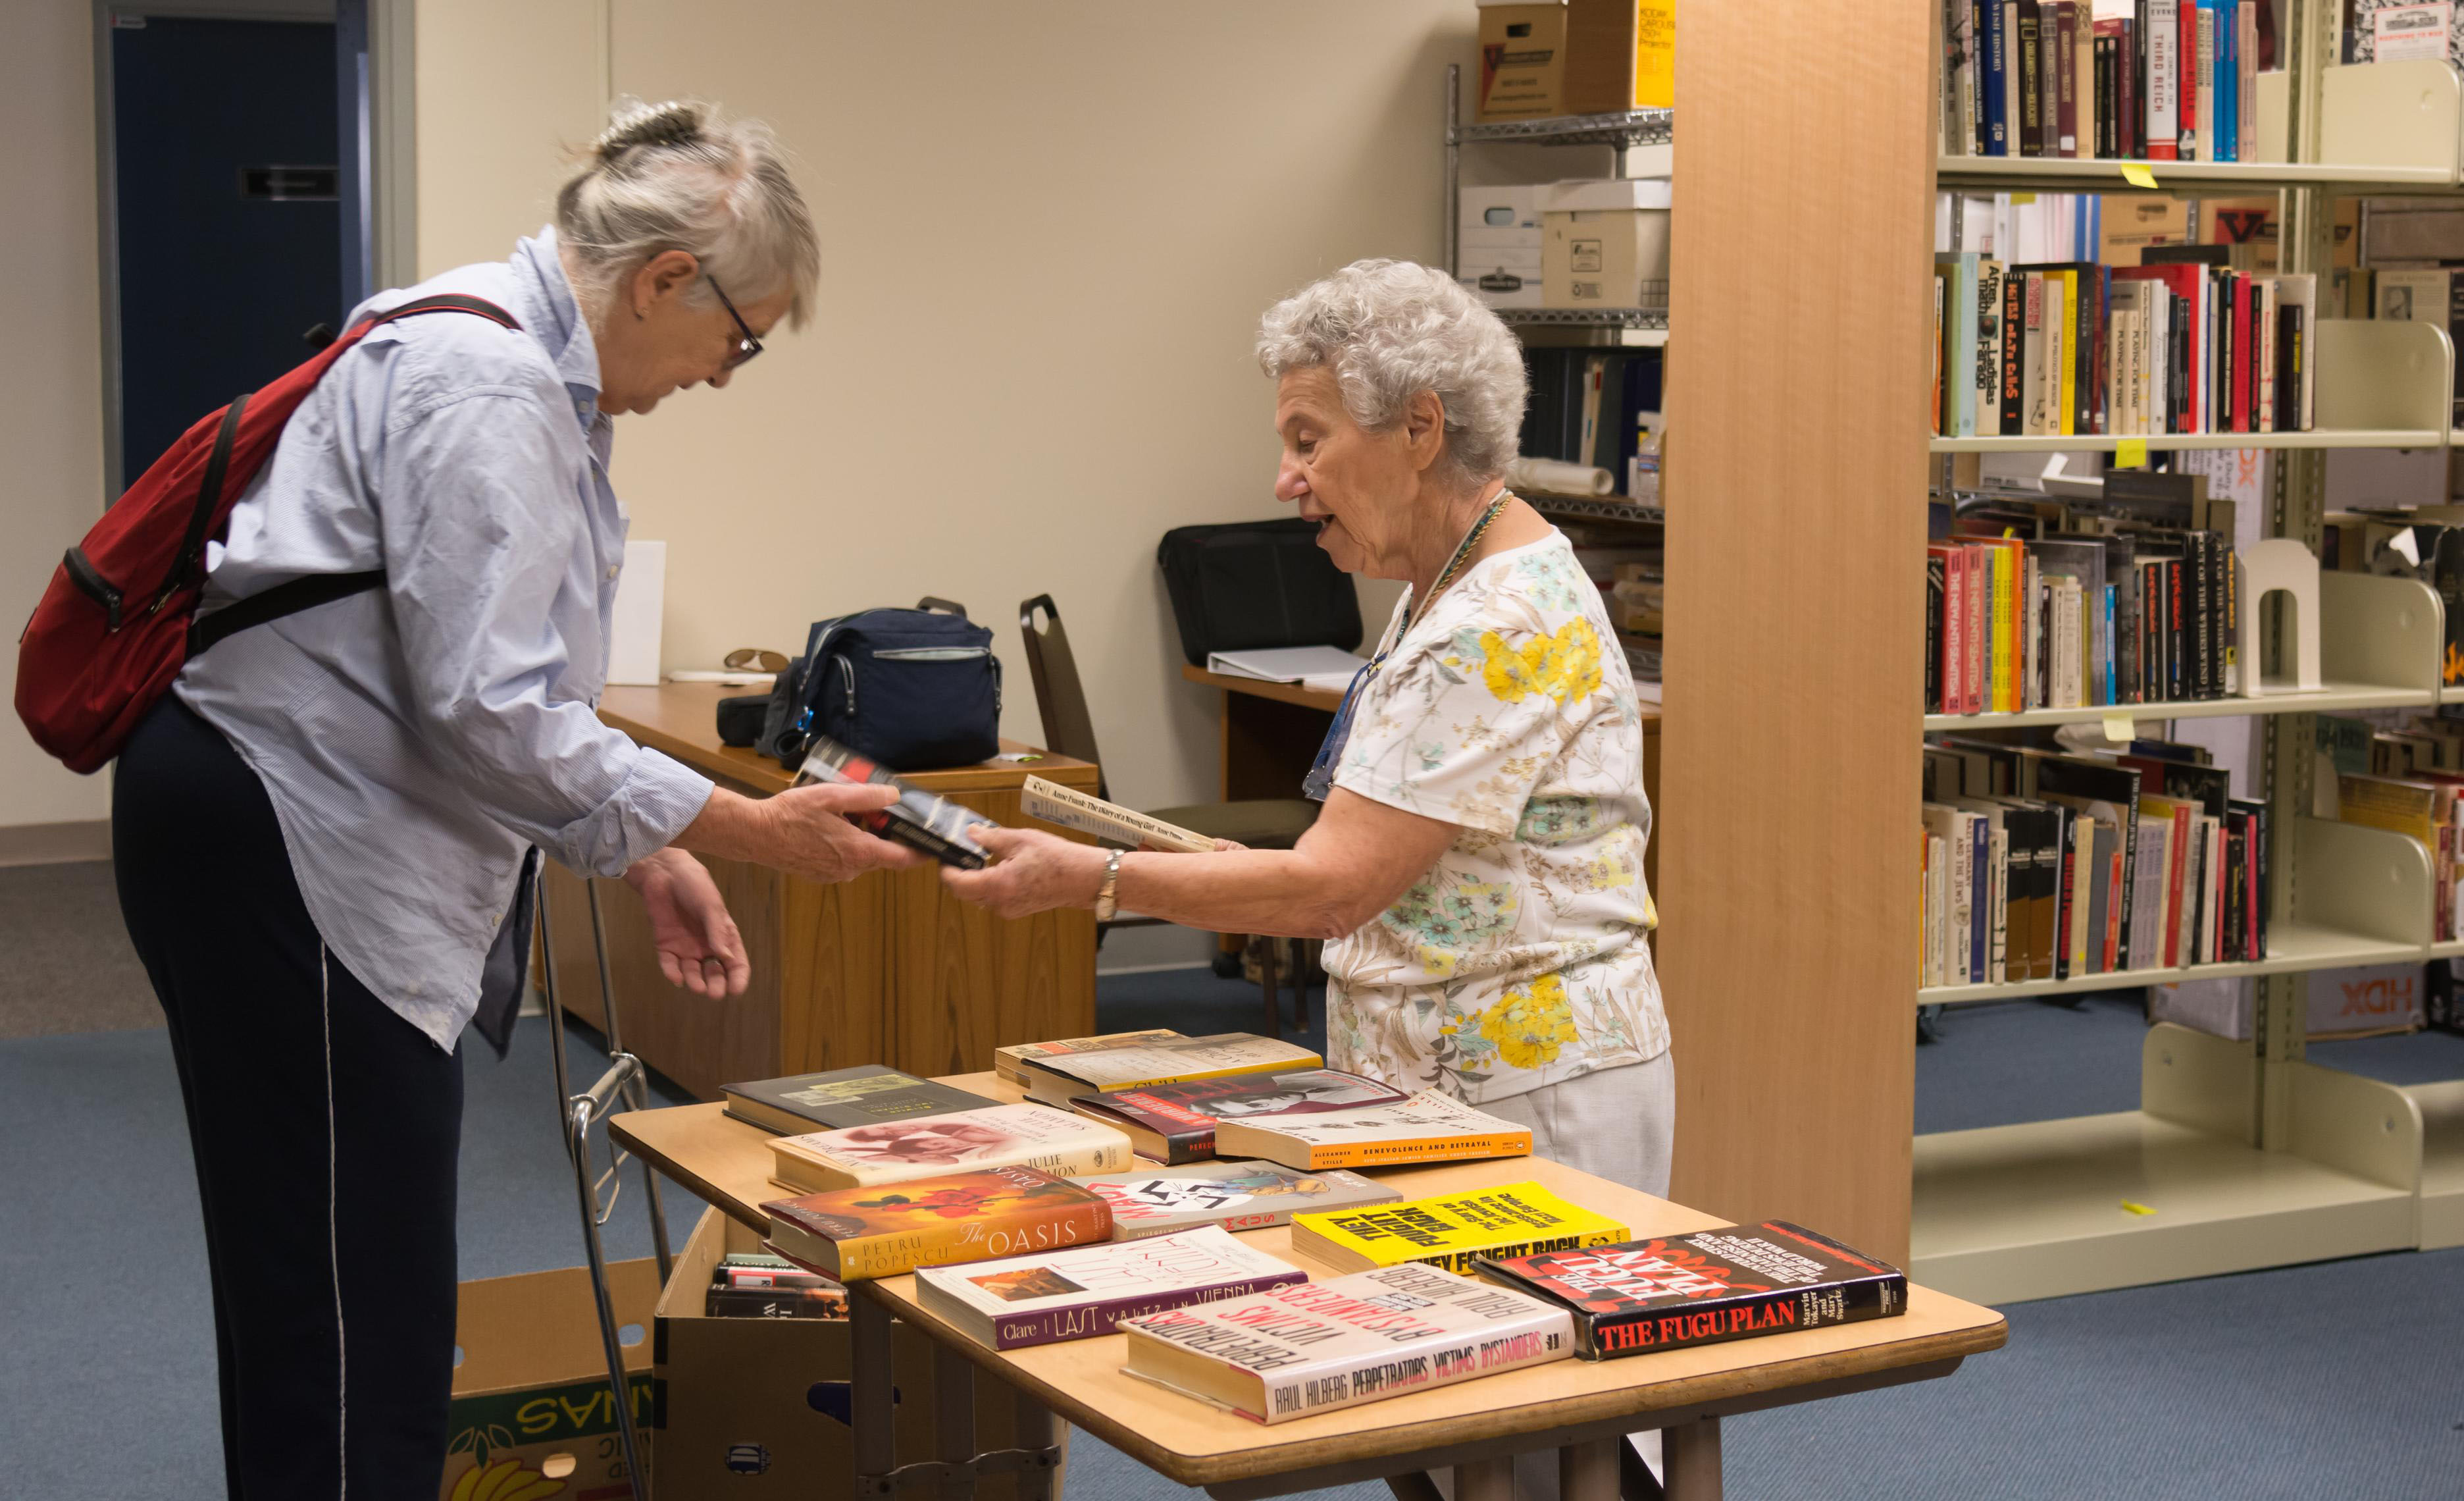 in a library, one old woman hands another woman a book